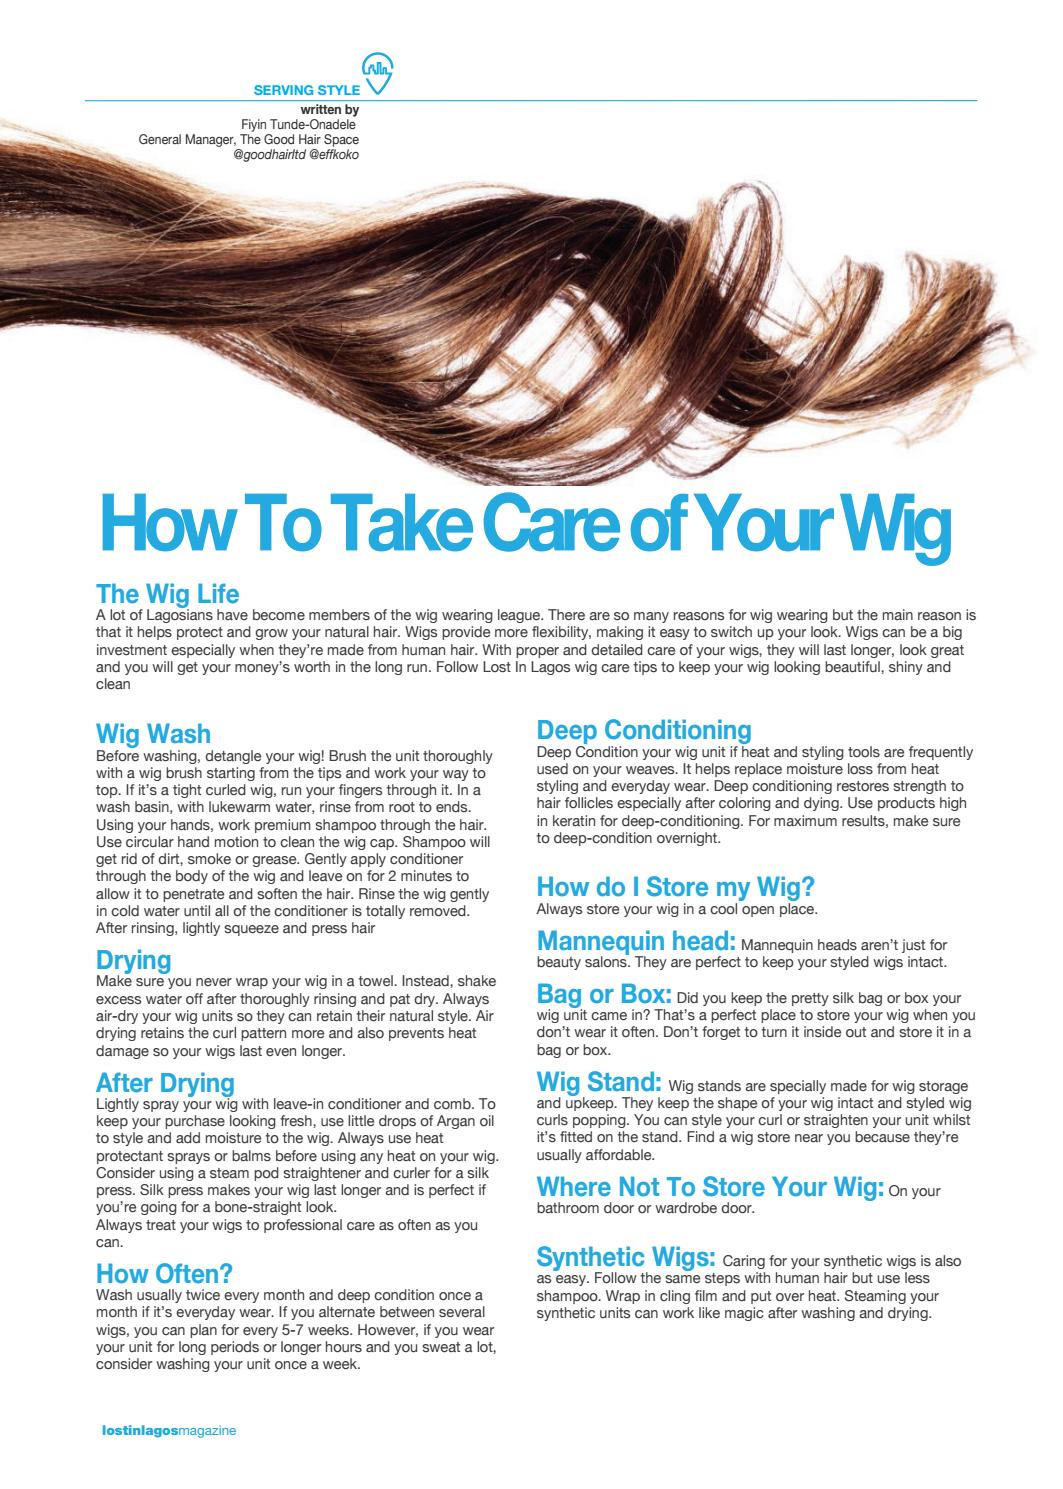 Do you deep condition your hair everyday